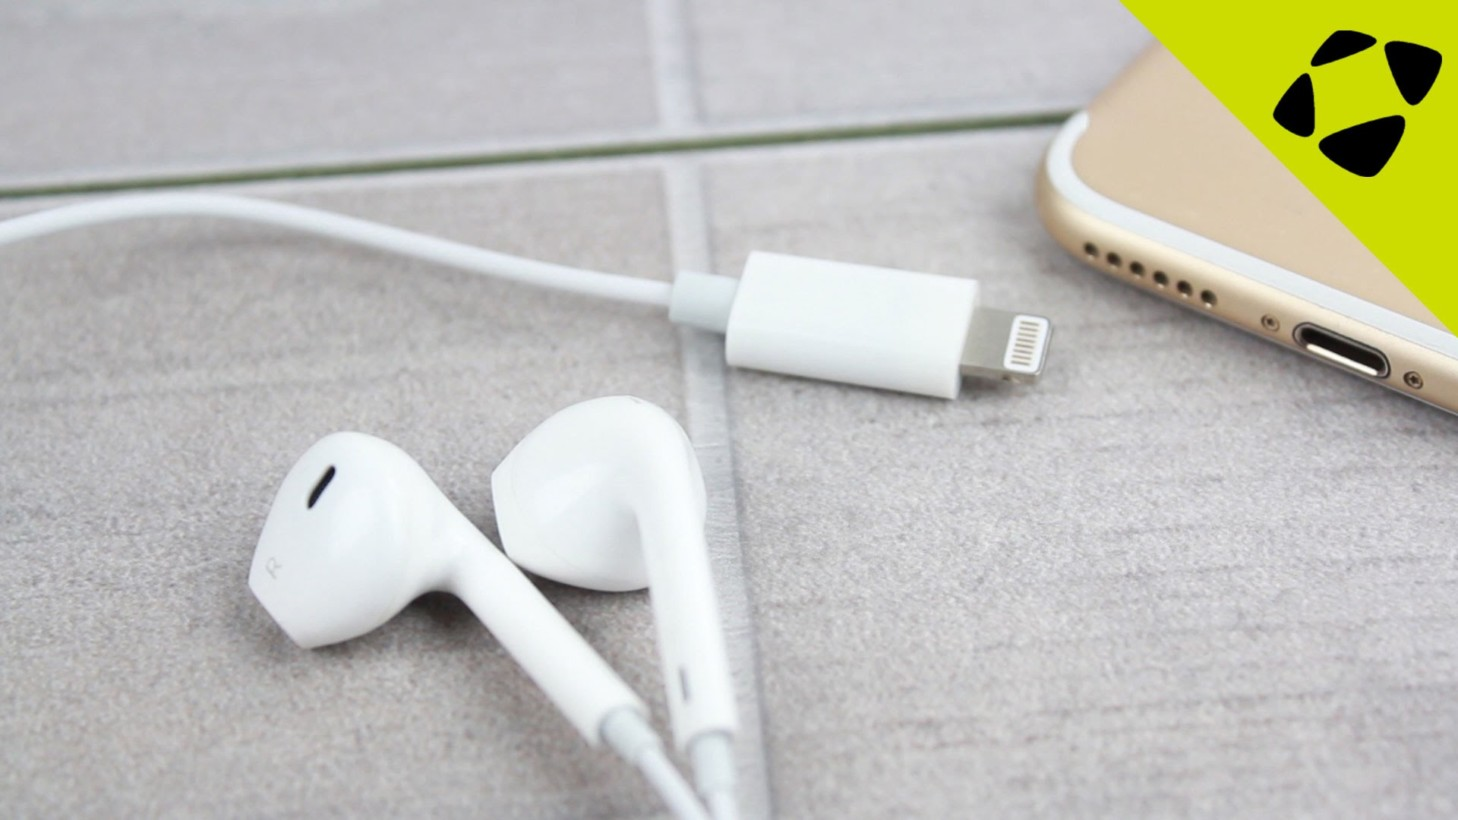 how to make apple earpods work on samsung s4